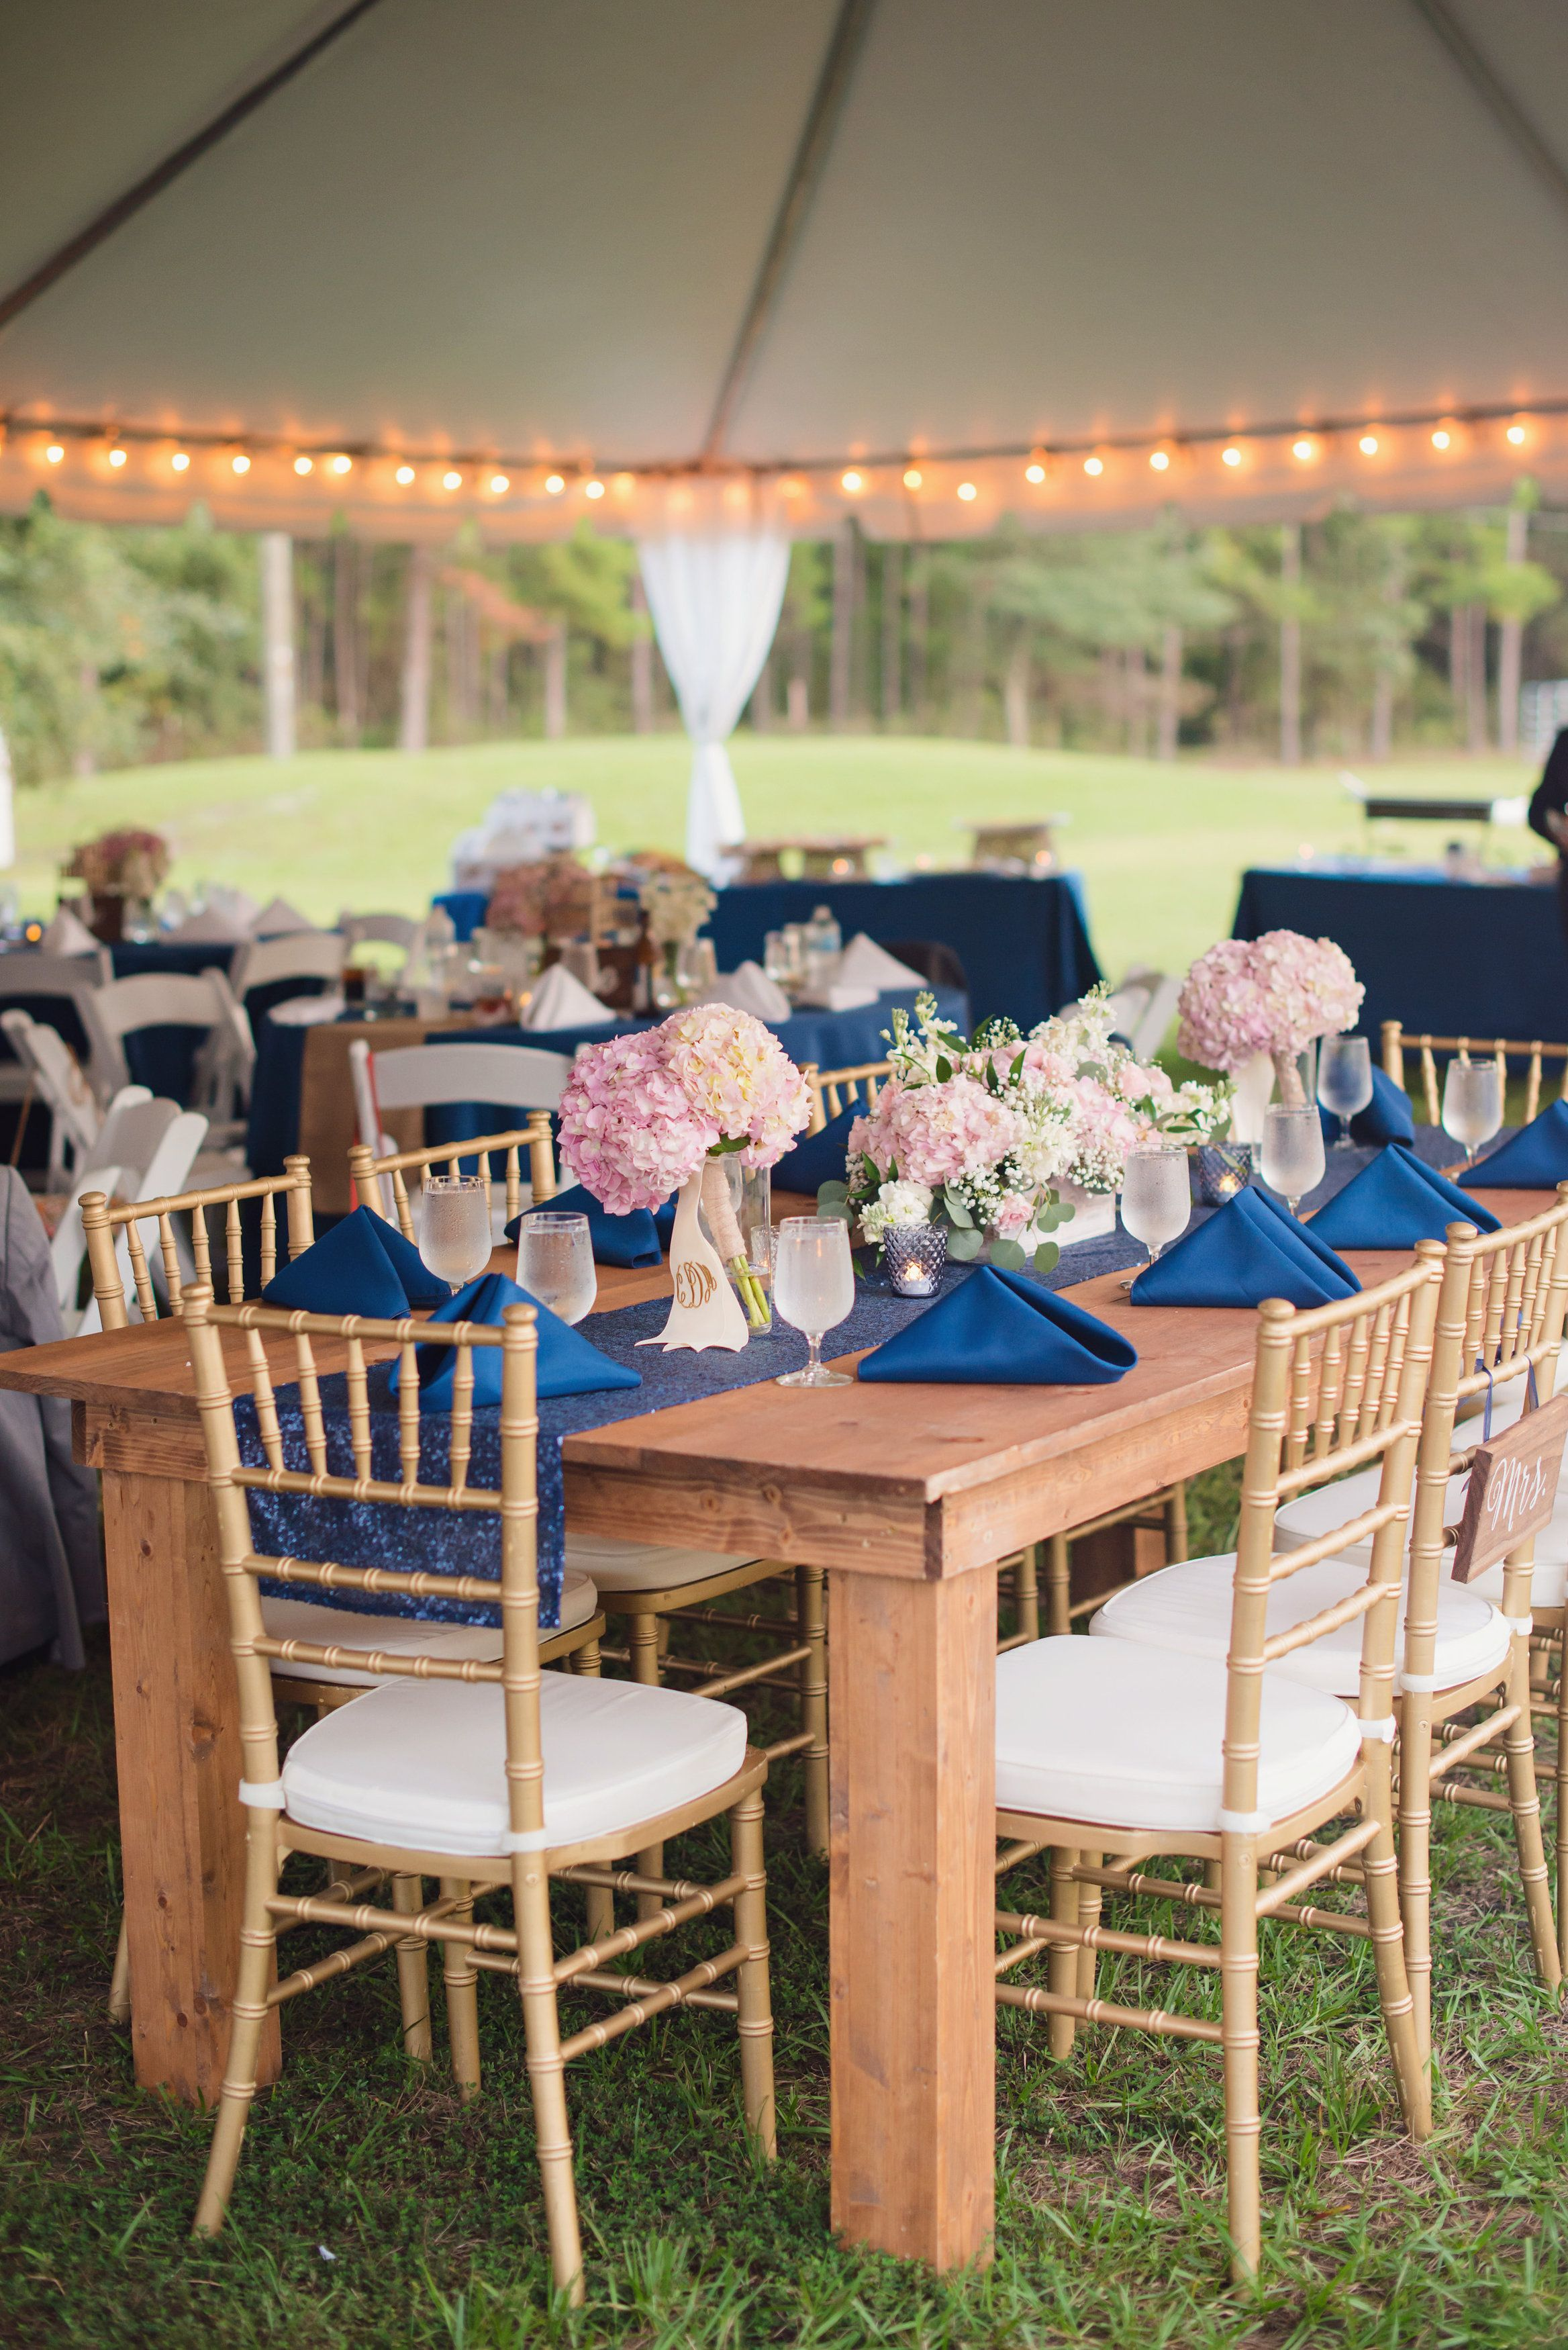 Wedding Chair Hire Algarve Office Waiting Room Chairs Cheap Our Very Own Farm Table Luxe Party Rentals Jacksonville Florida Www Luxepartyrentals Com